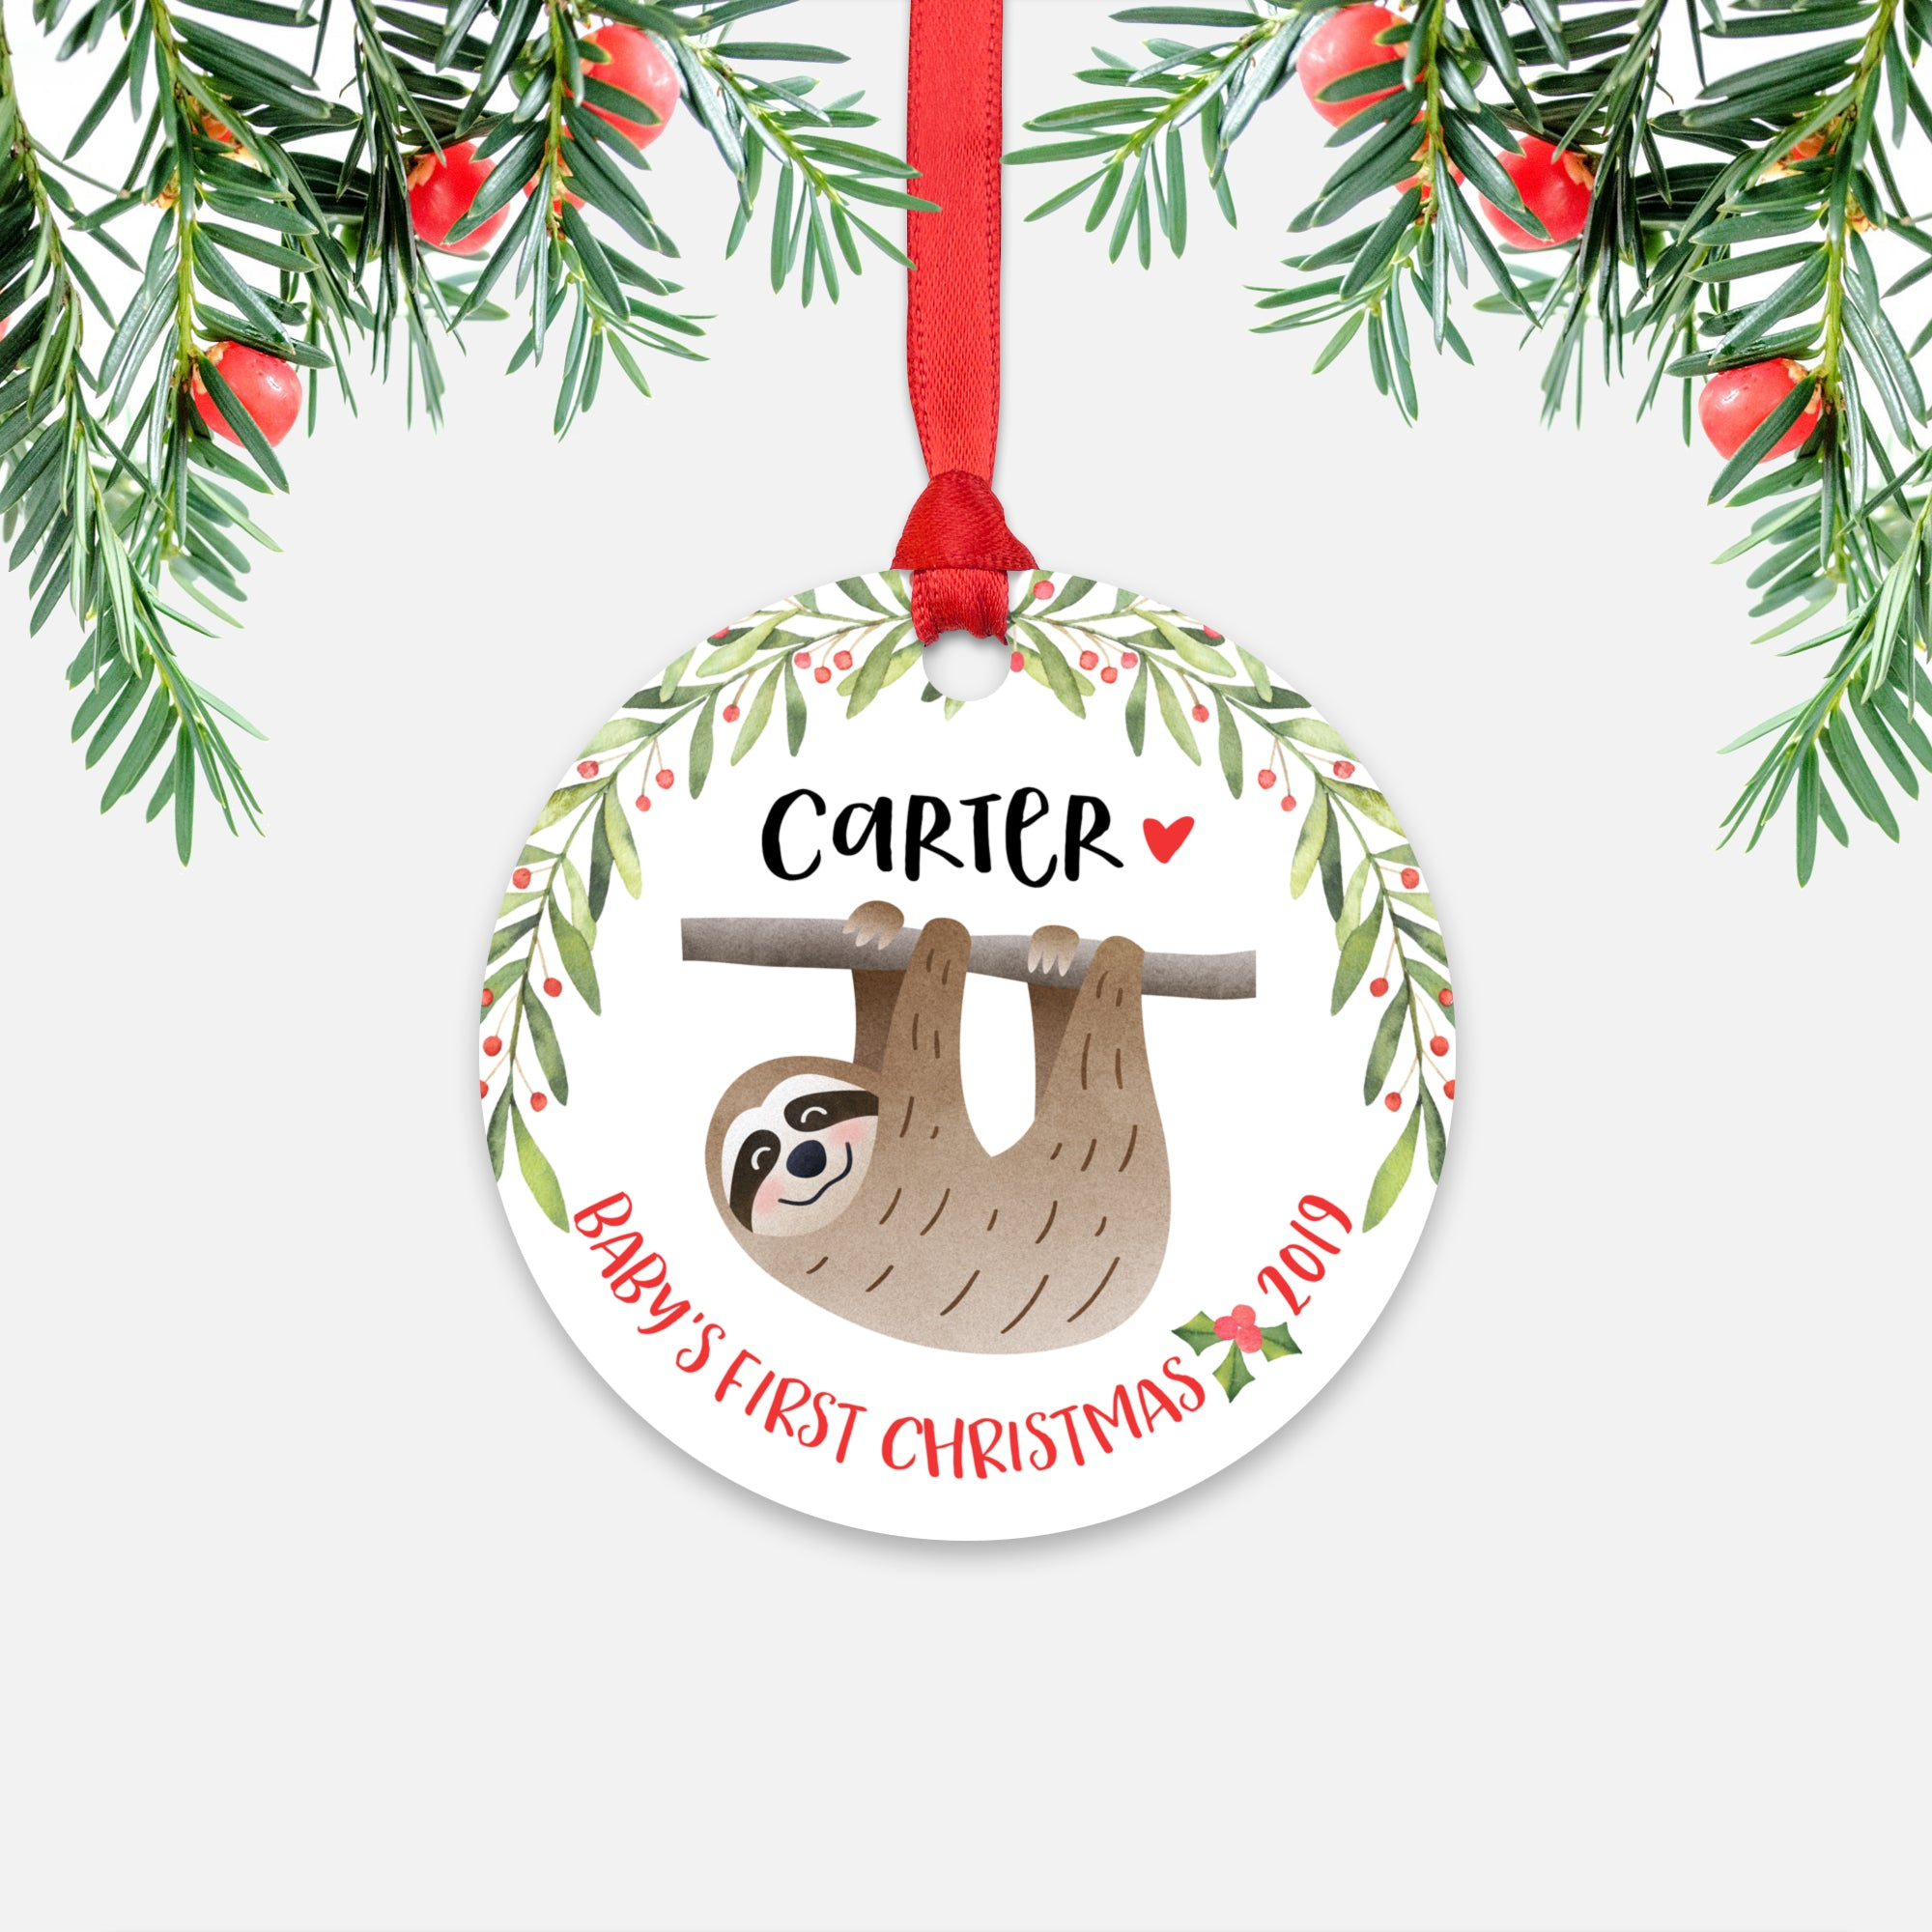 Sloth Personalized Baby's First Christmas Ornament for Baby Boy or Baby Girl - Cute Tropical Animal Baby 1st Holidays Decoration - Custom Christmas Gift Idea for New Parents - Round Aluminum - by Happy Cat Prints